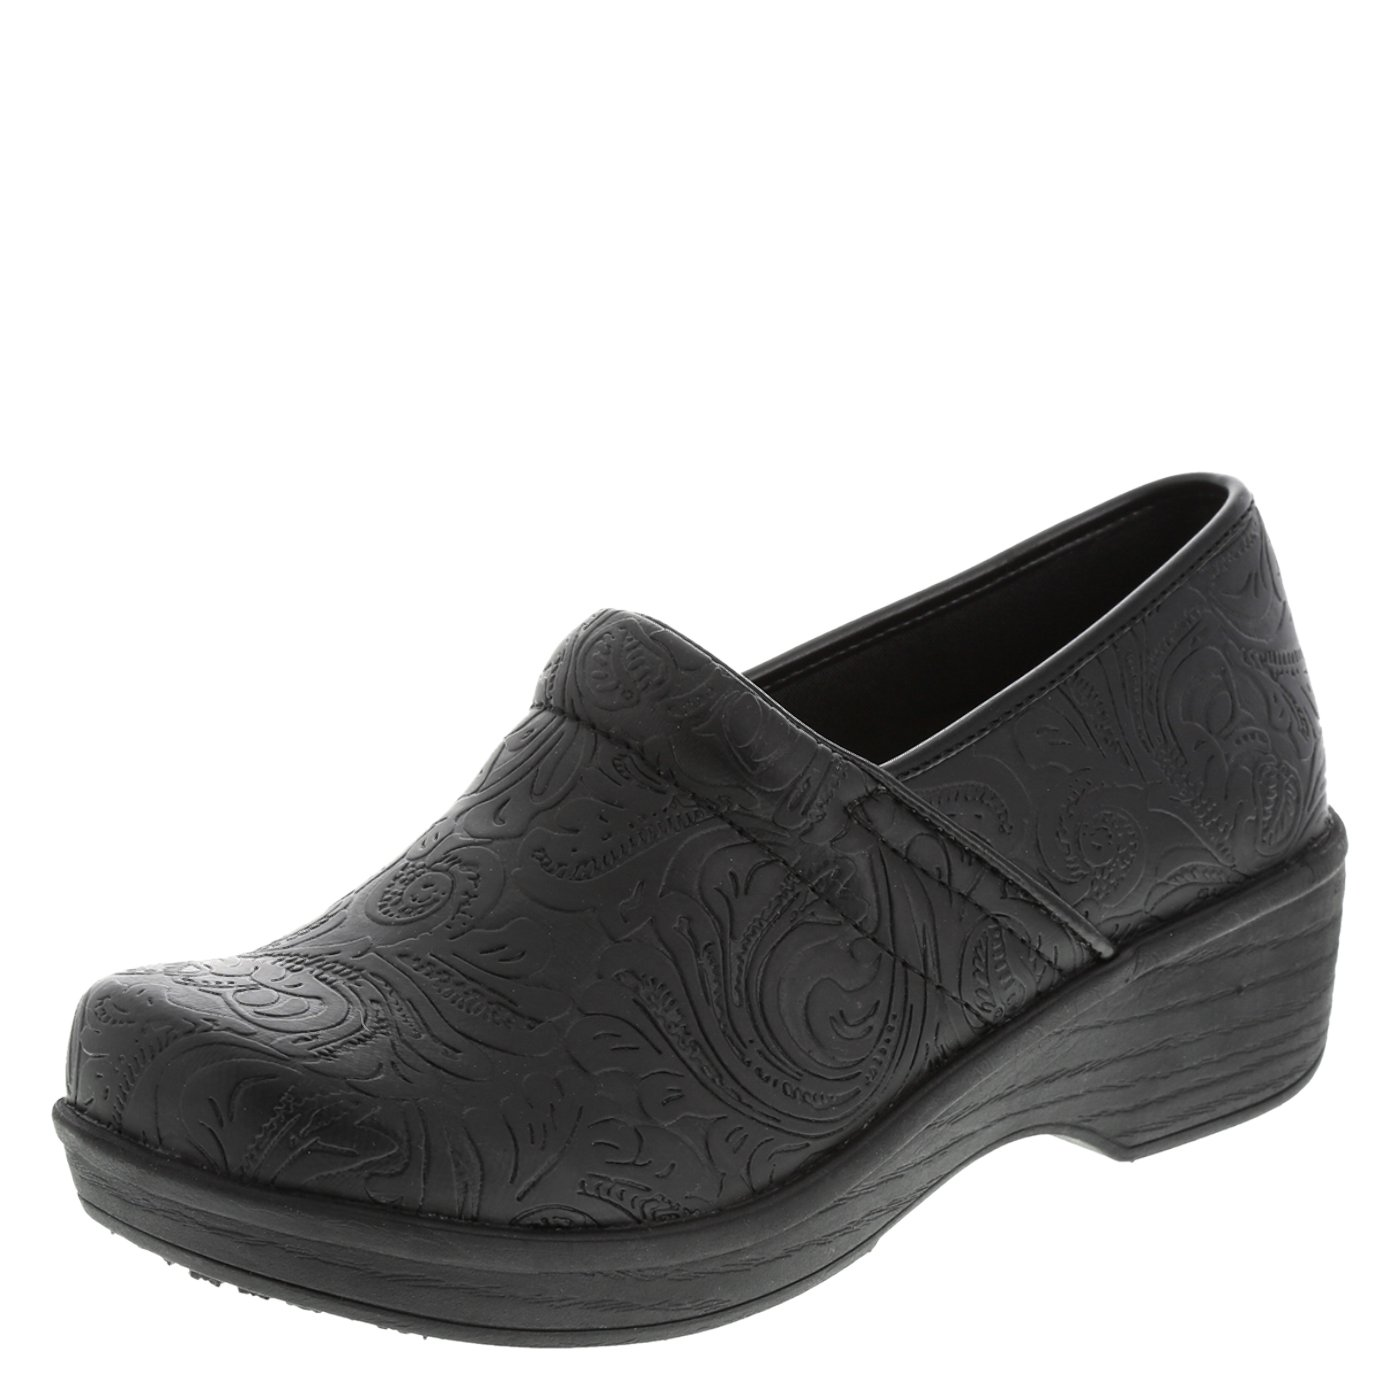 safeTstep Embossed Black Paisley Women's Slip Resistant Gretchen Clog 11 Wide